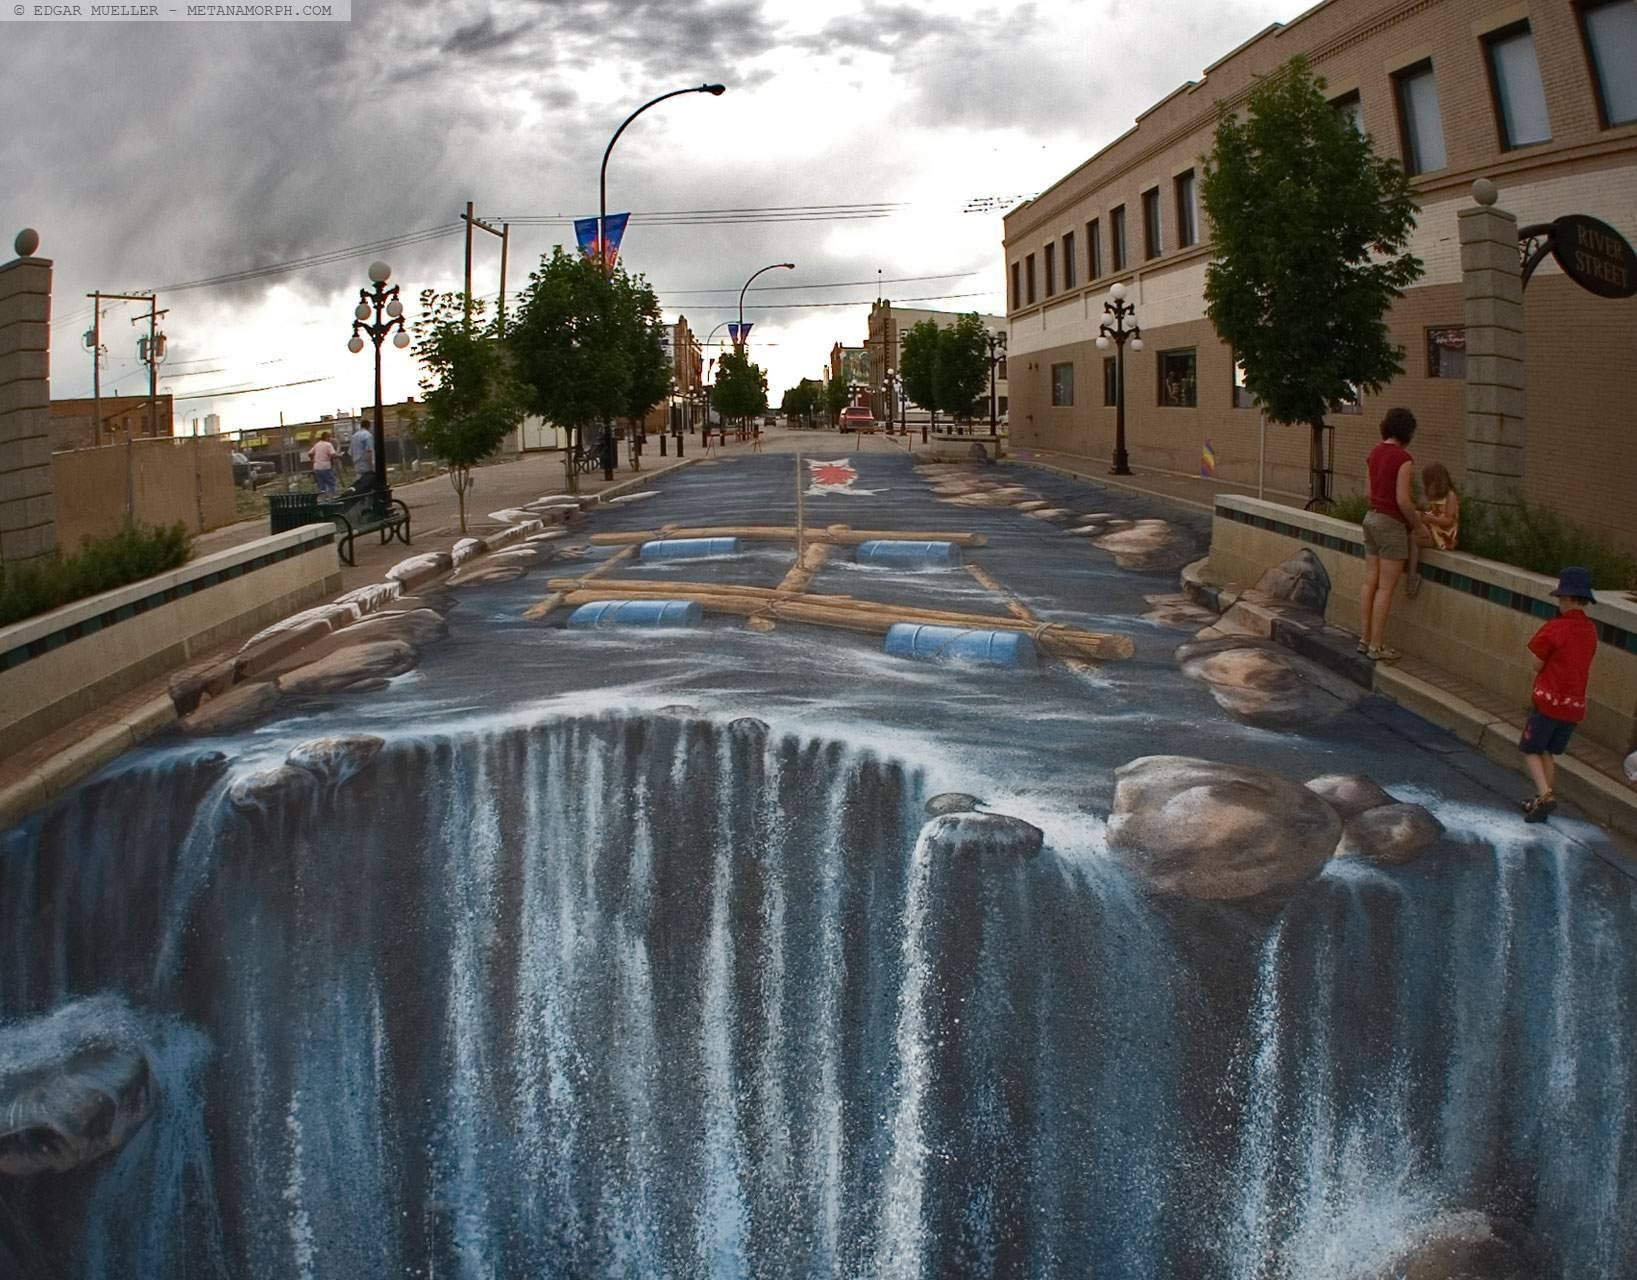 Amazing Sidewalk Art Illusions Swimming Pool Drawings – ????????? Intended For Latest 3D Wall Art Illusions (View 10 of 20)